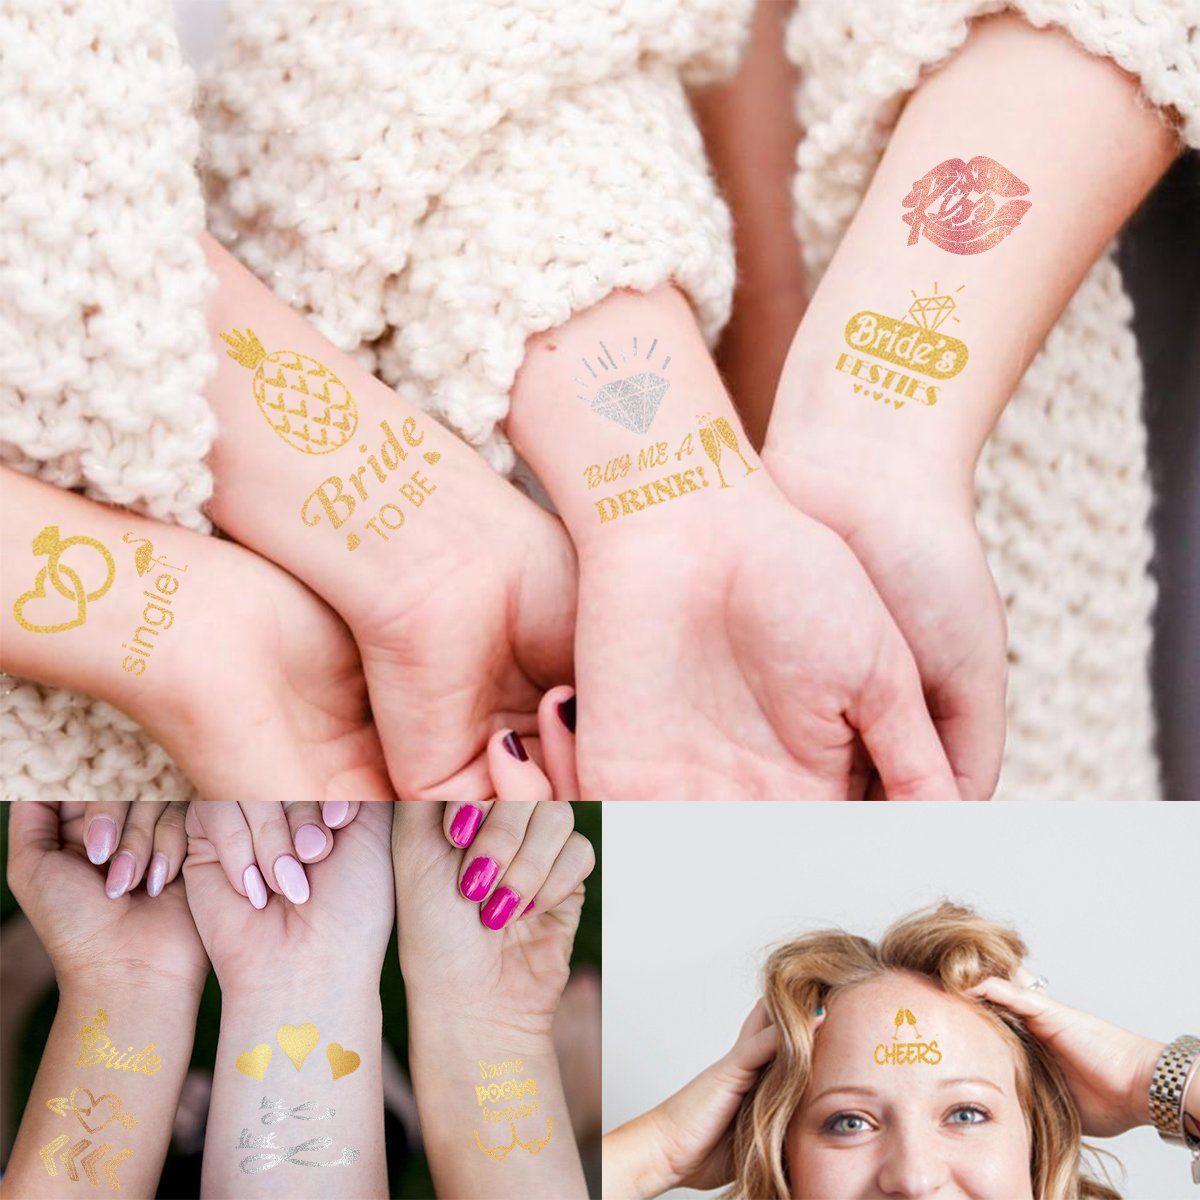 Amazon.com : Unomor Bachelorette Tattoos Bride Tribe Tattoos for ...